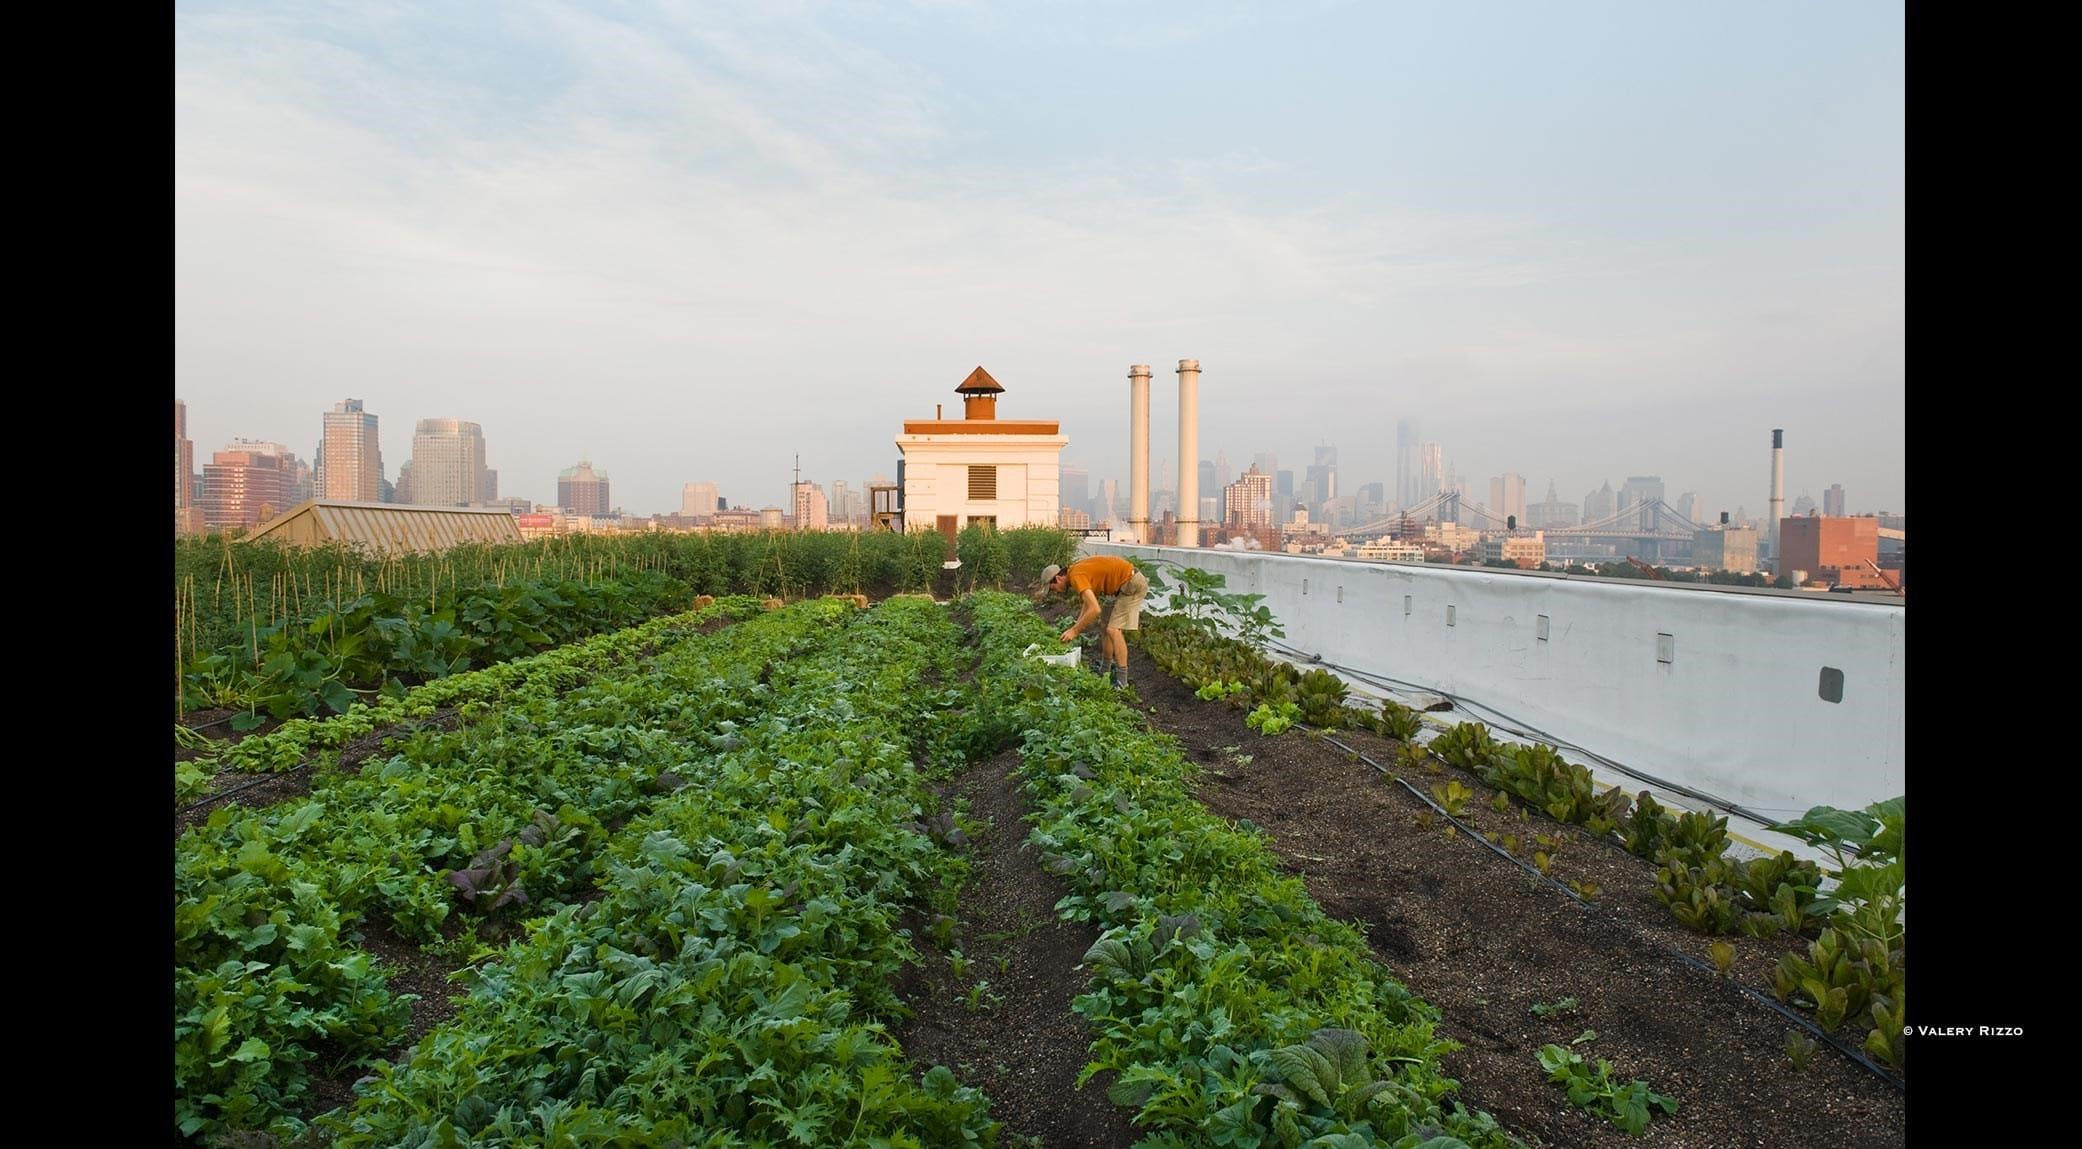 Brooklyn Urban Farming